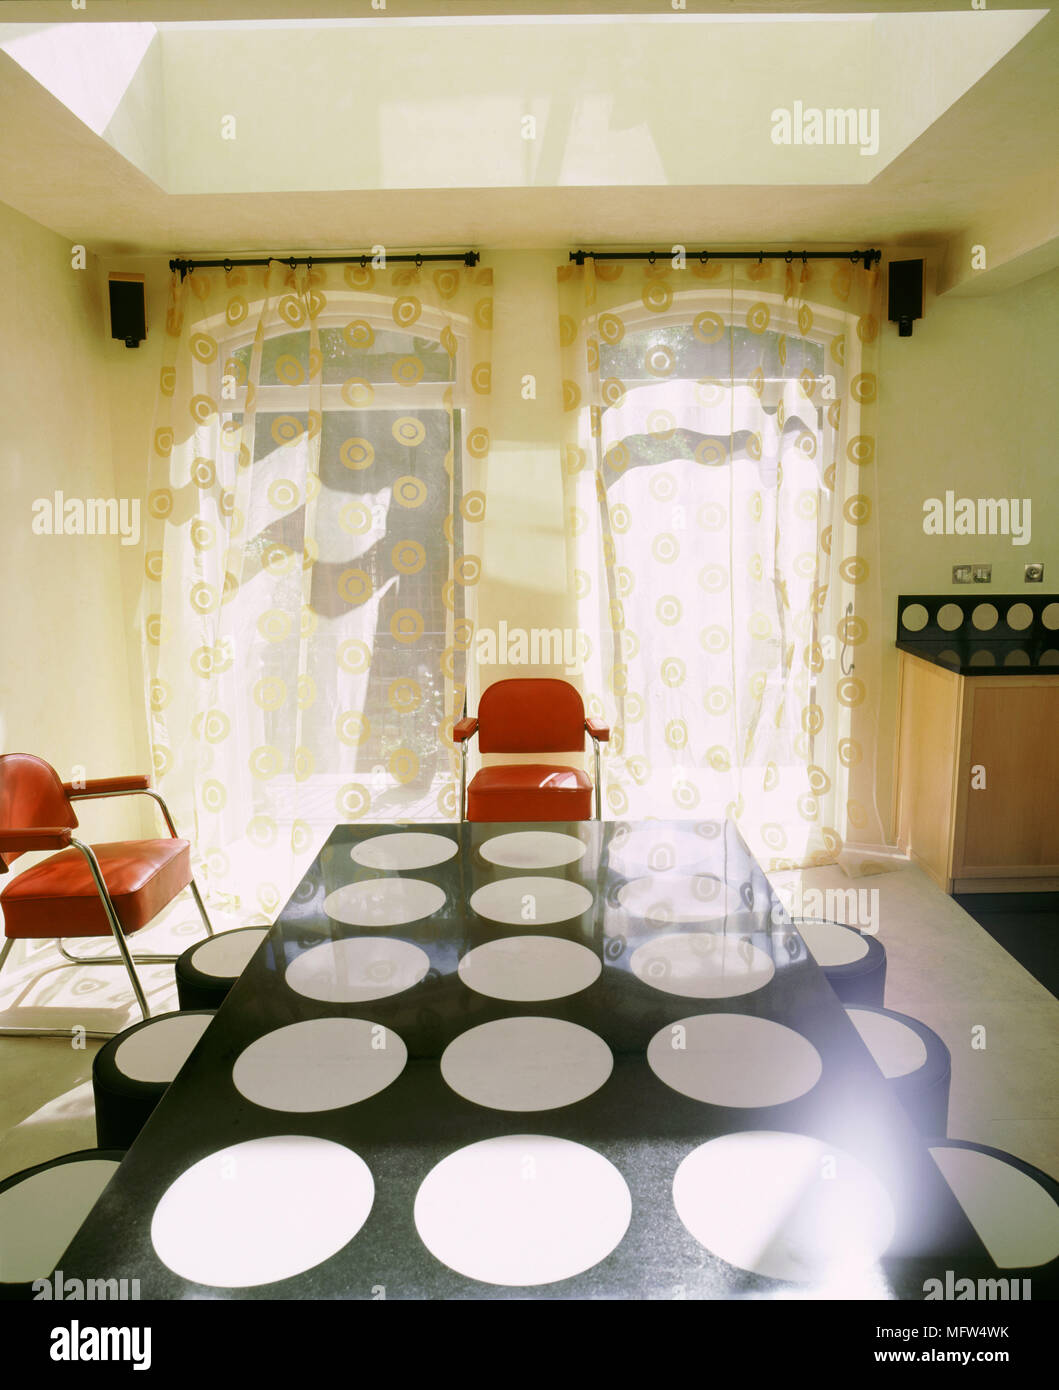 Modern Dining Room Sheer Curtains Black Table With White Circle Design Red Chairs Stock Photo Alamy